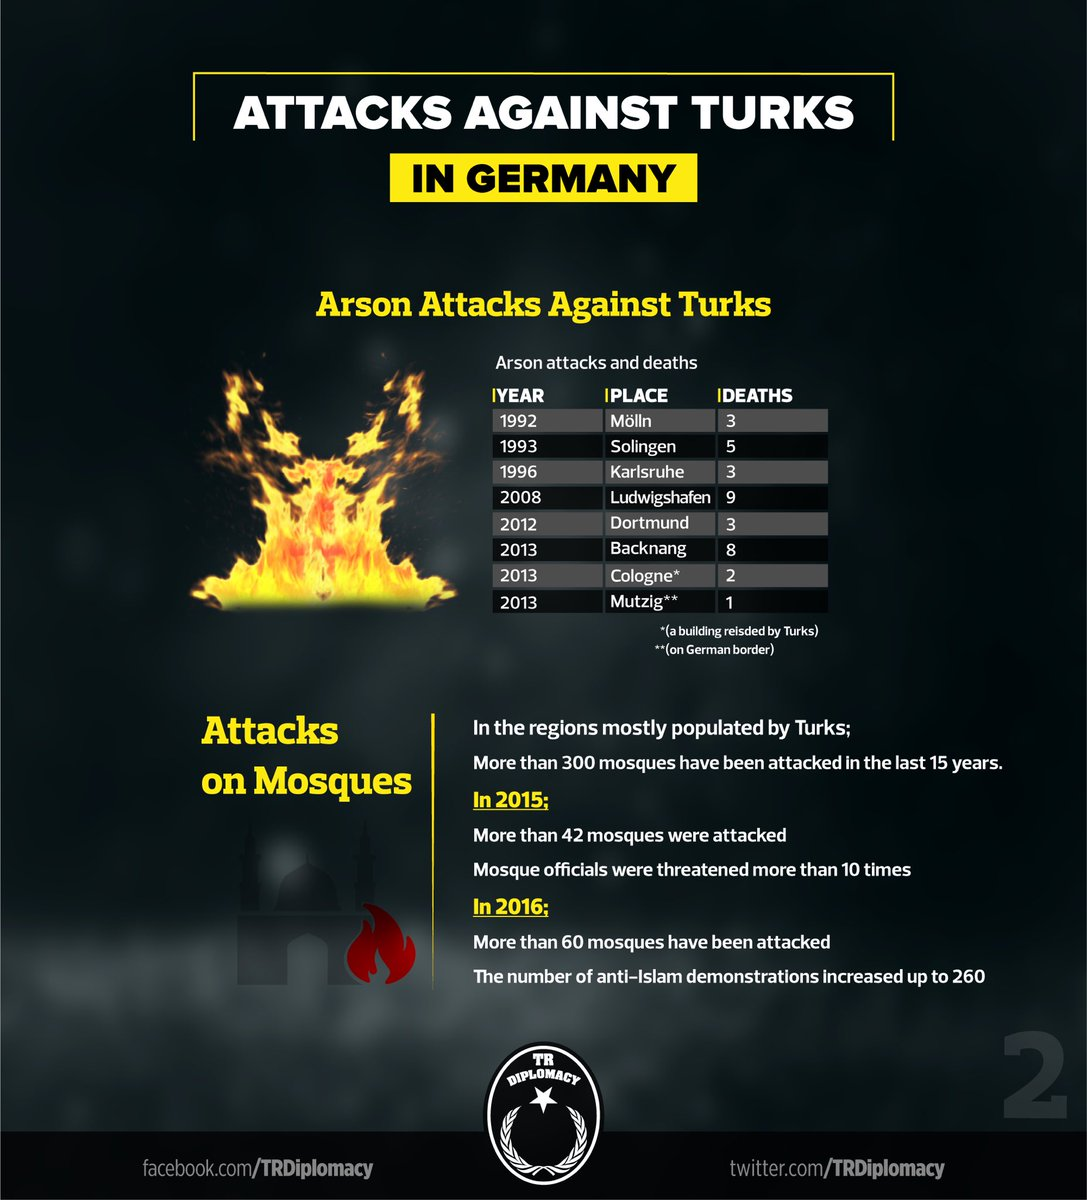 Attacks against Turks in Germany